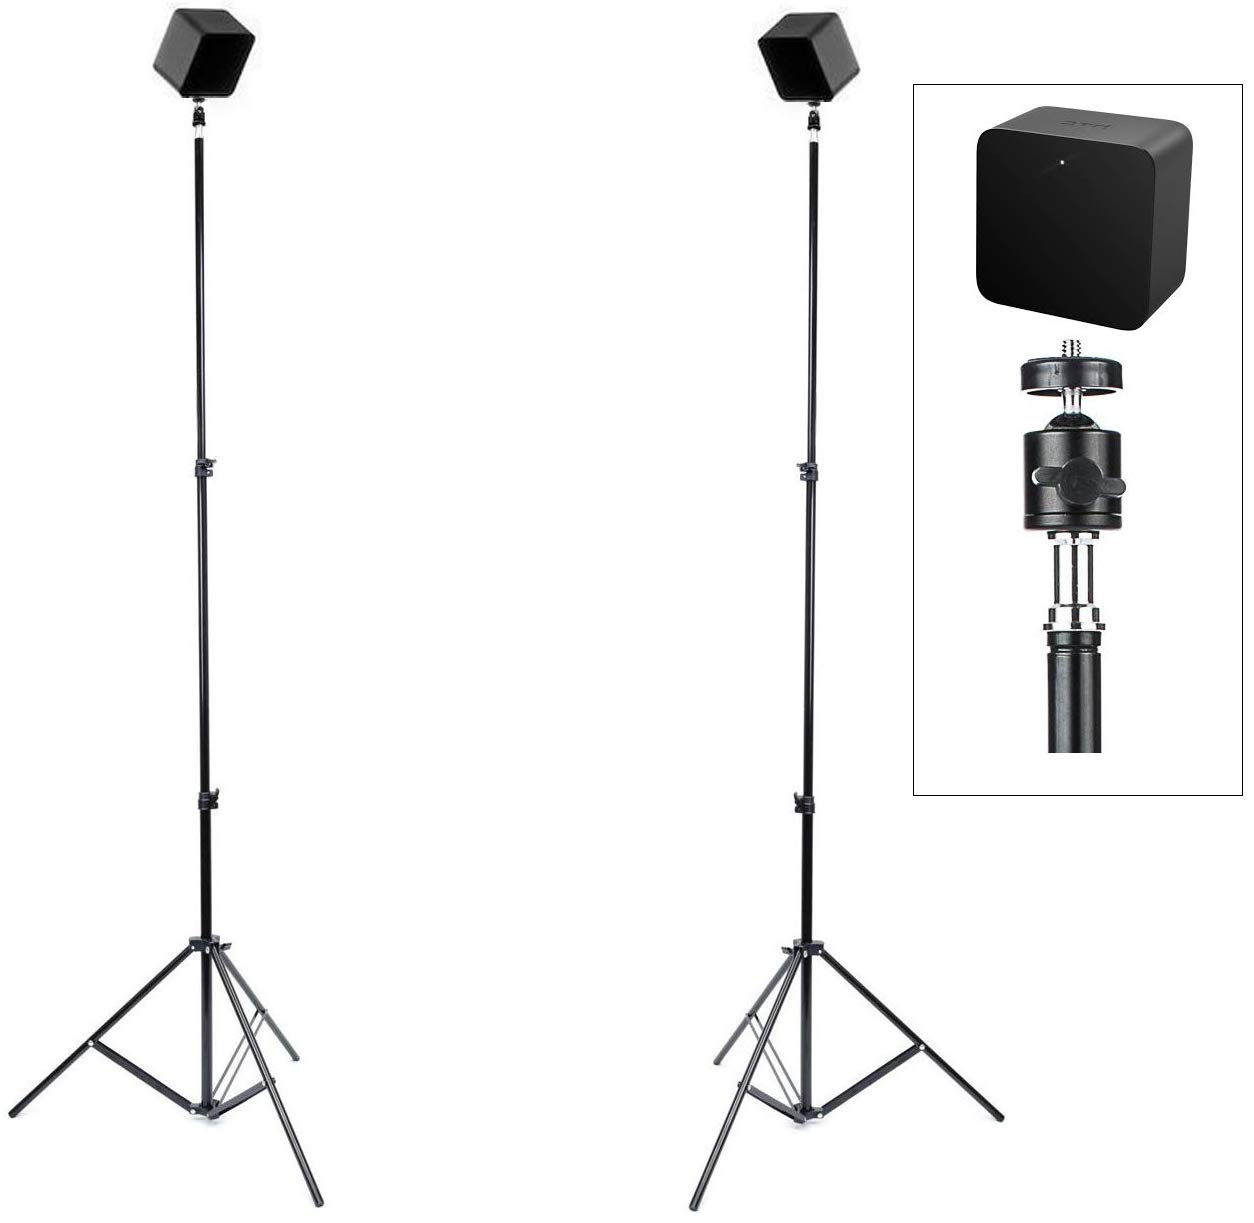 Skywin VR Tripod Stand HTC Vive Compatible Sensor Stand and Base Station for Vive Sensors or Oculus Rift Constellation (2-Pack)